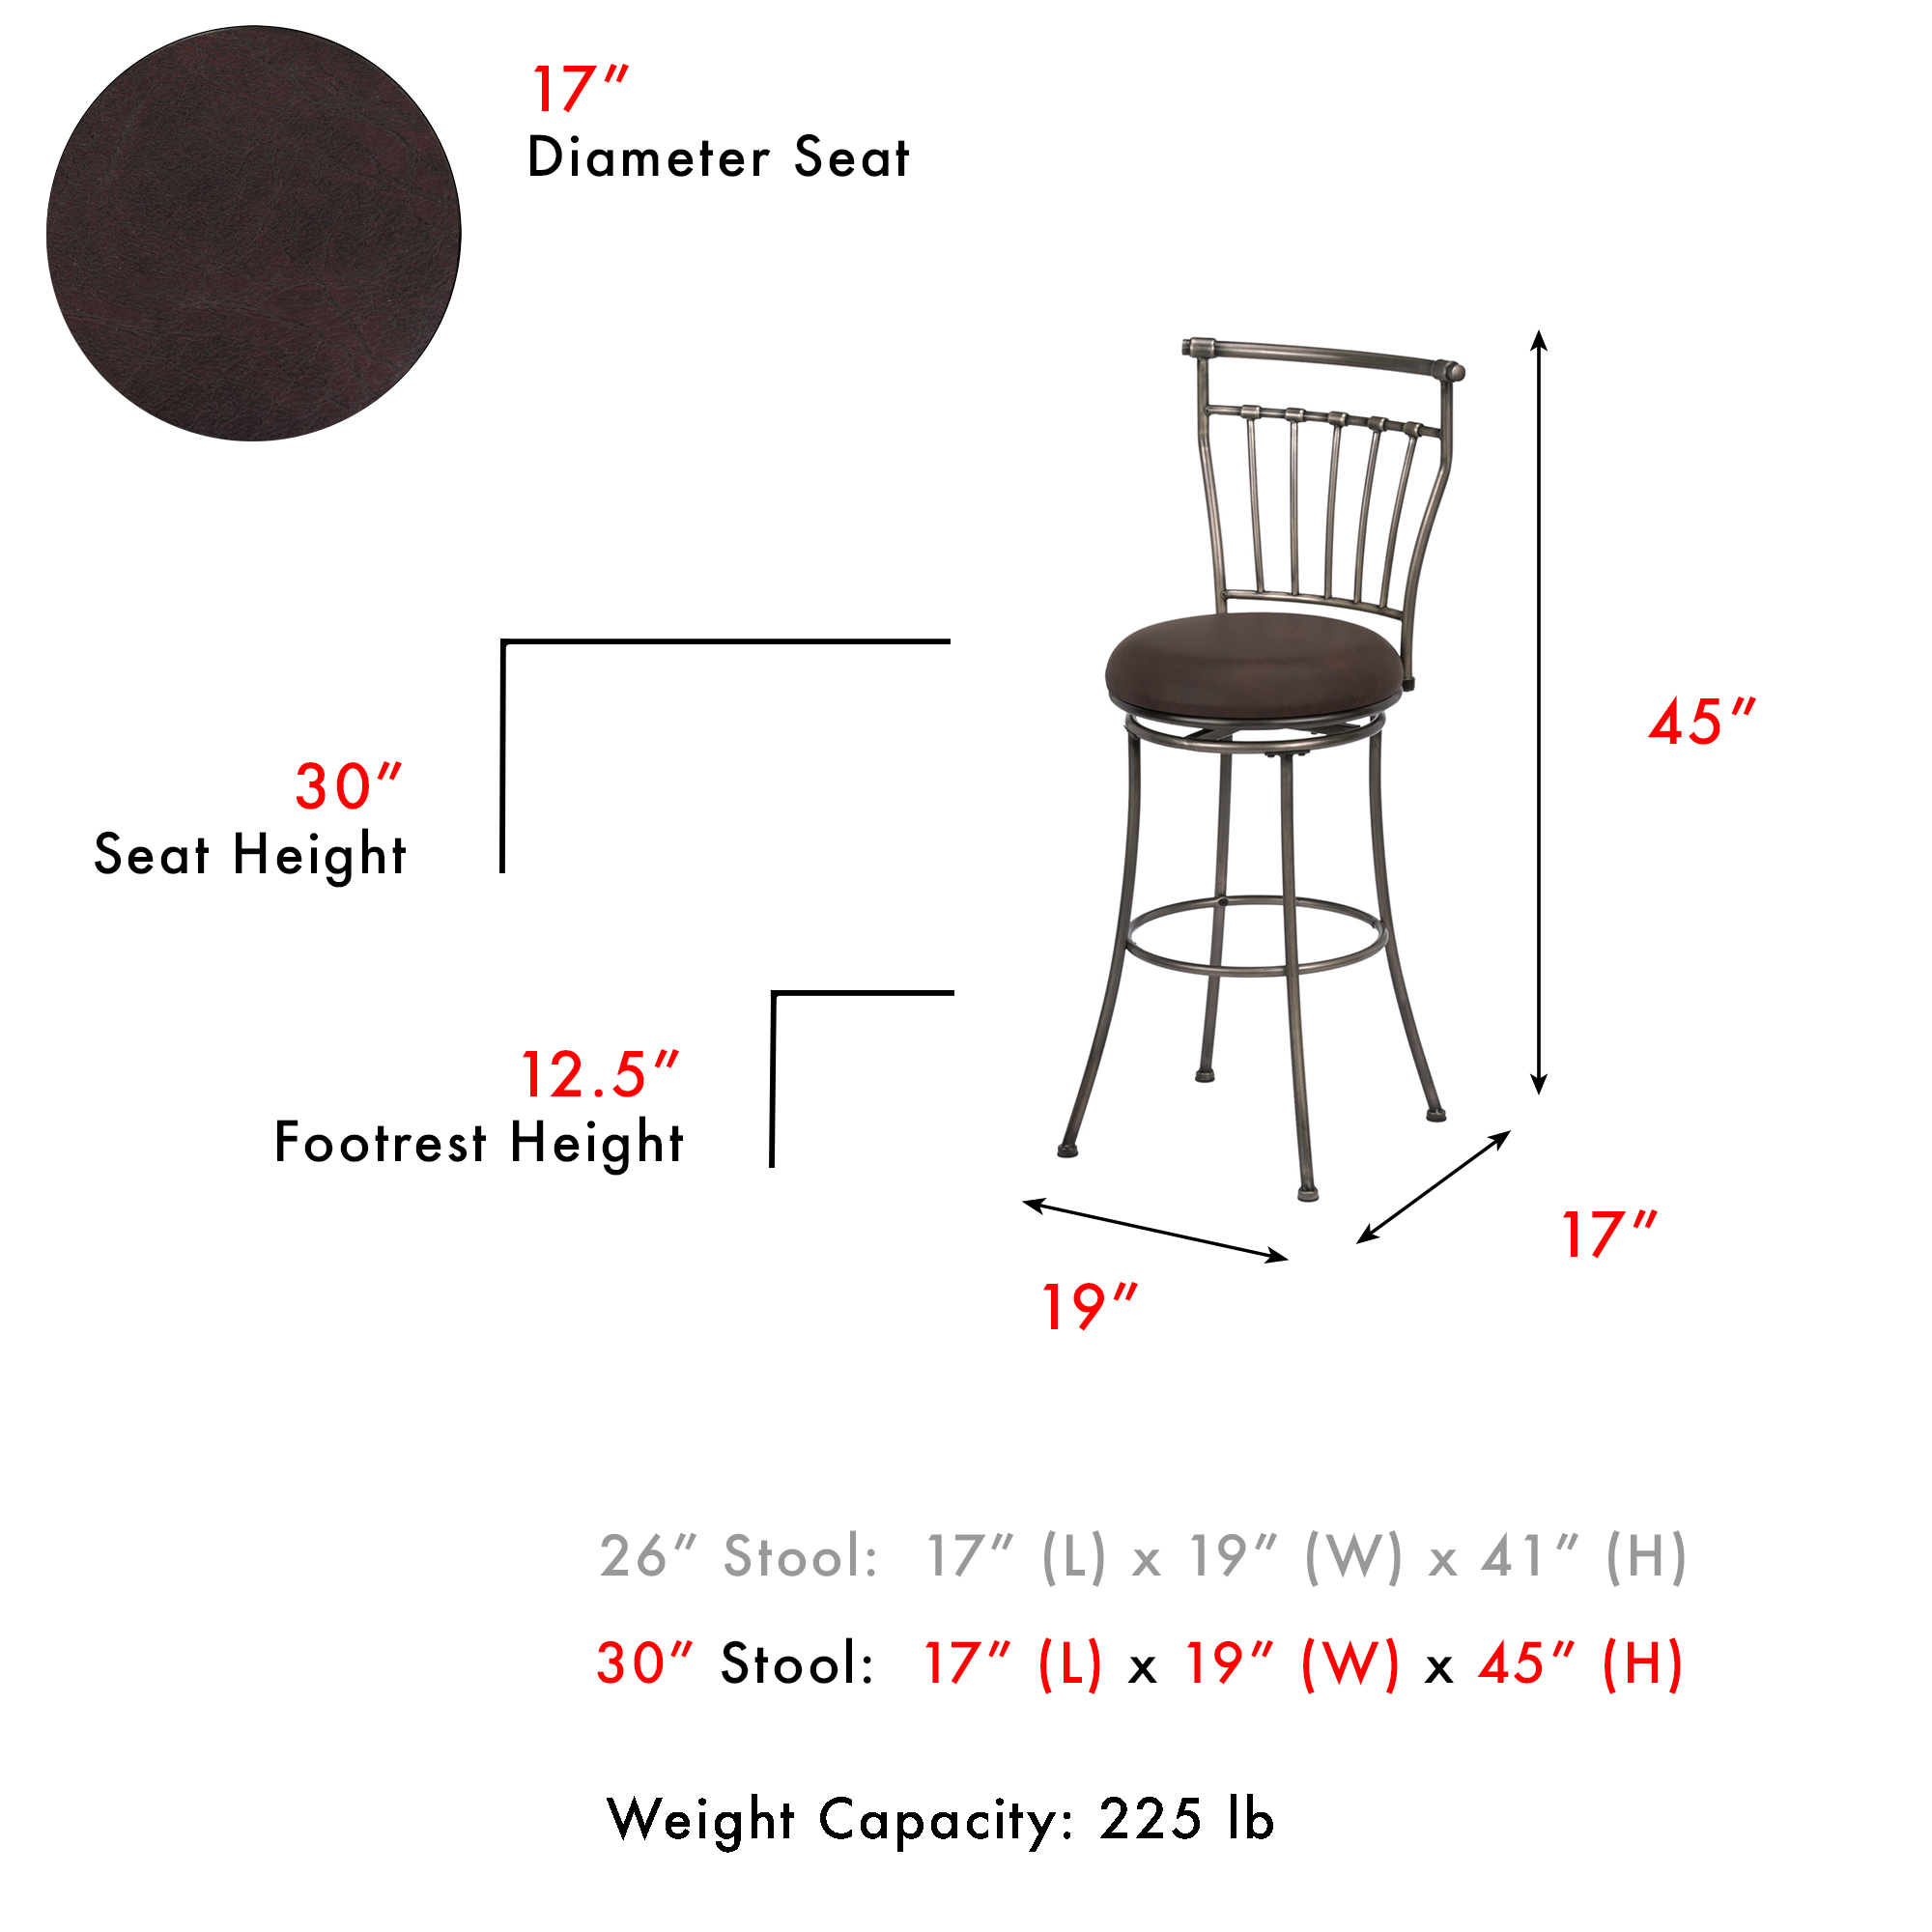 Miraculous C1M020Fashion Bed Group Topeka Swivel Seat Bar Stool With Uwap Interior Chair Design Uwaporg